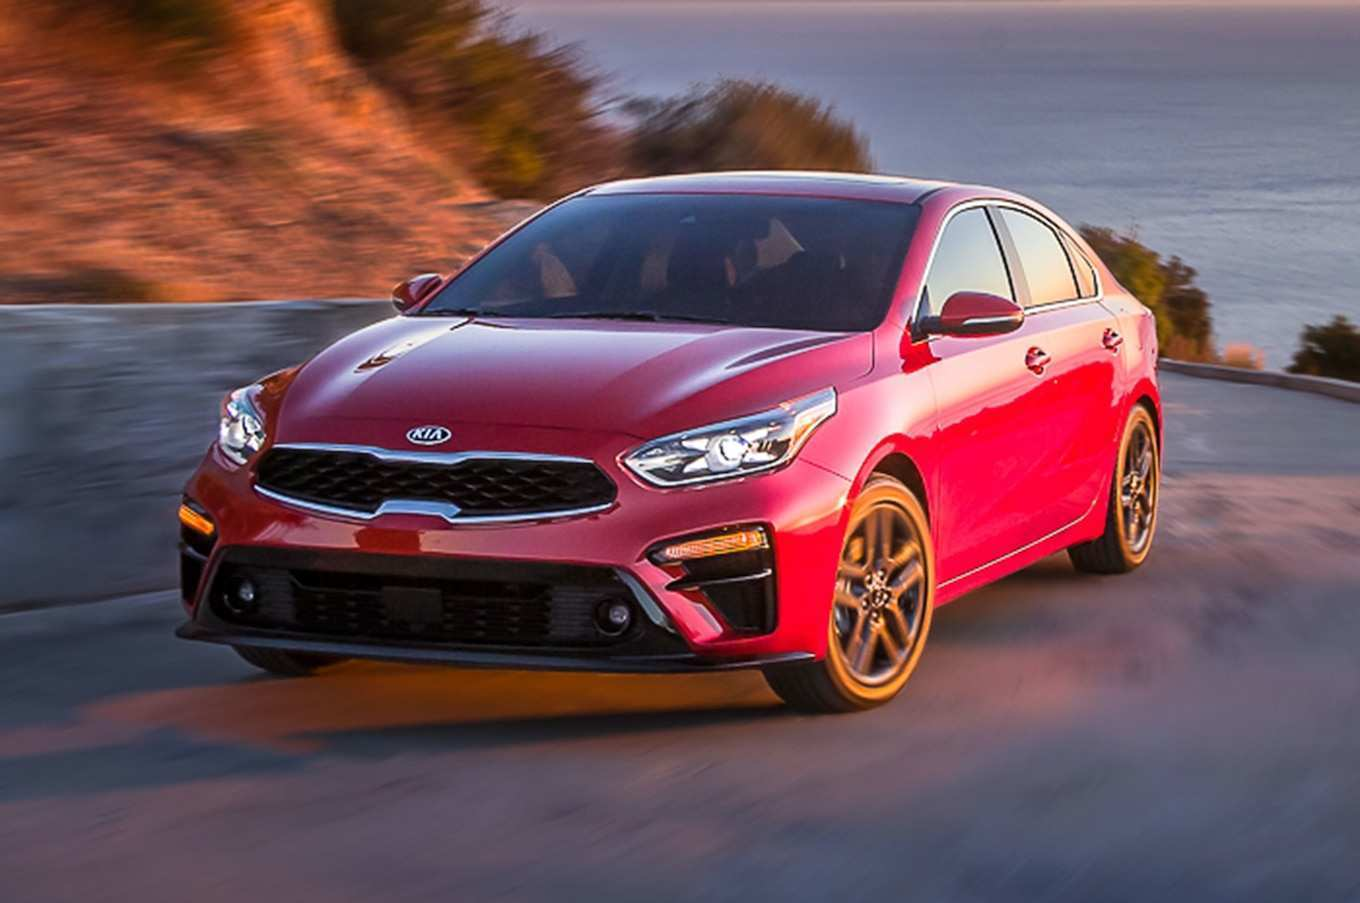 80 Great Kia Forte 2019 White Spesification Price and Review by Kia Forte 2019 White Spesification